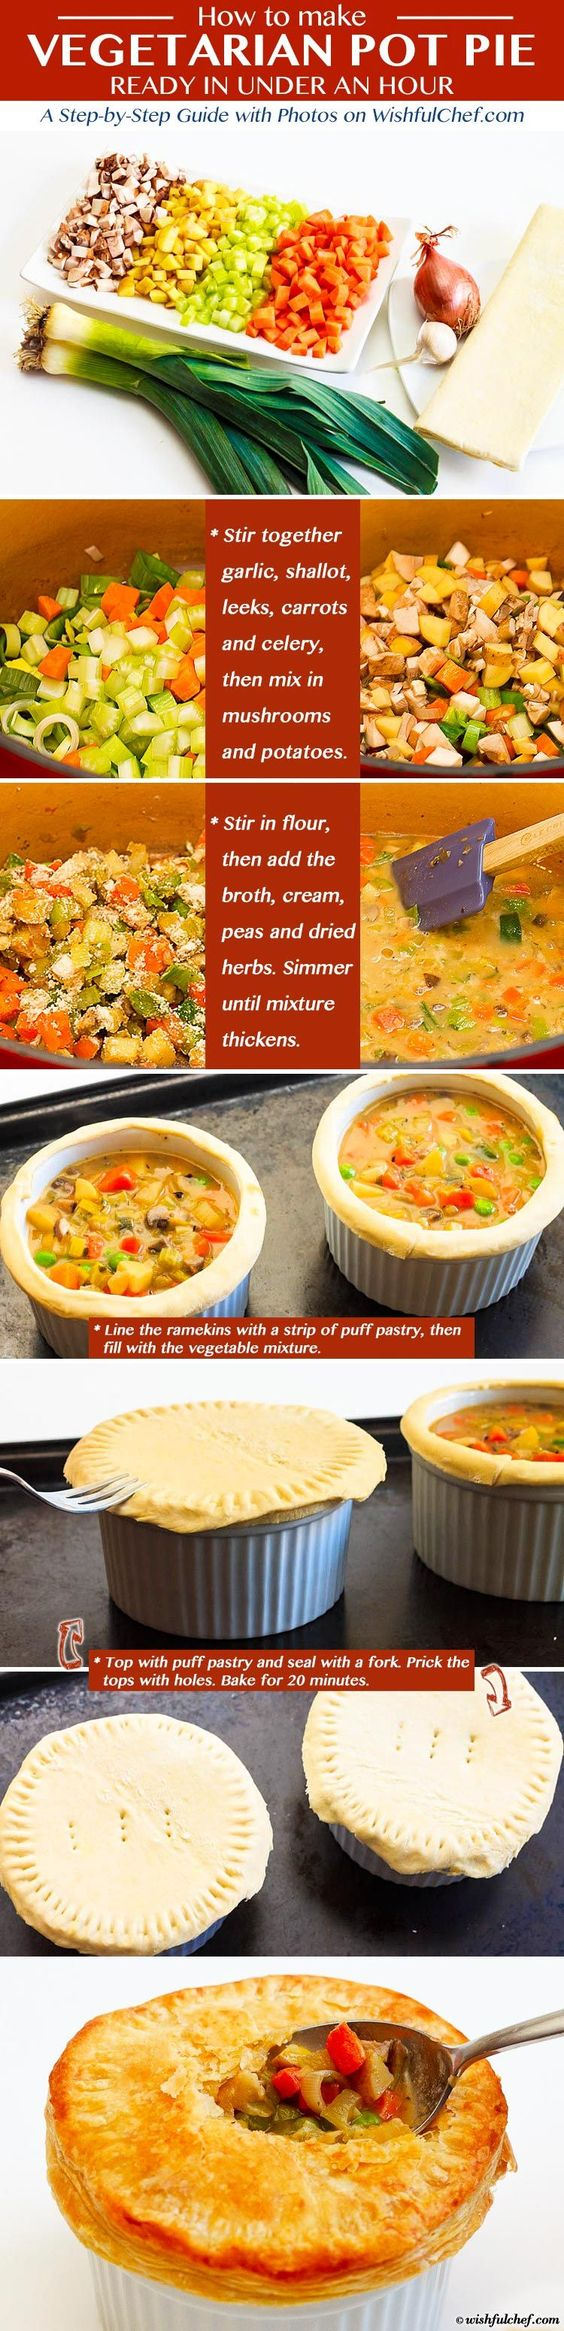 Easy Vegetarian Pot Pie Recipe | Vegetables, Pastries and Pie recipes